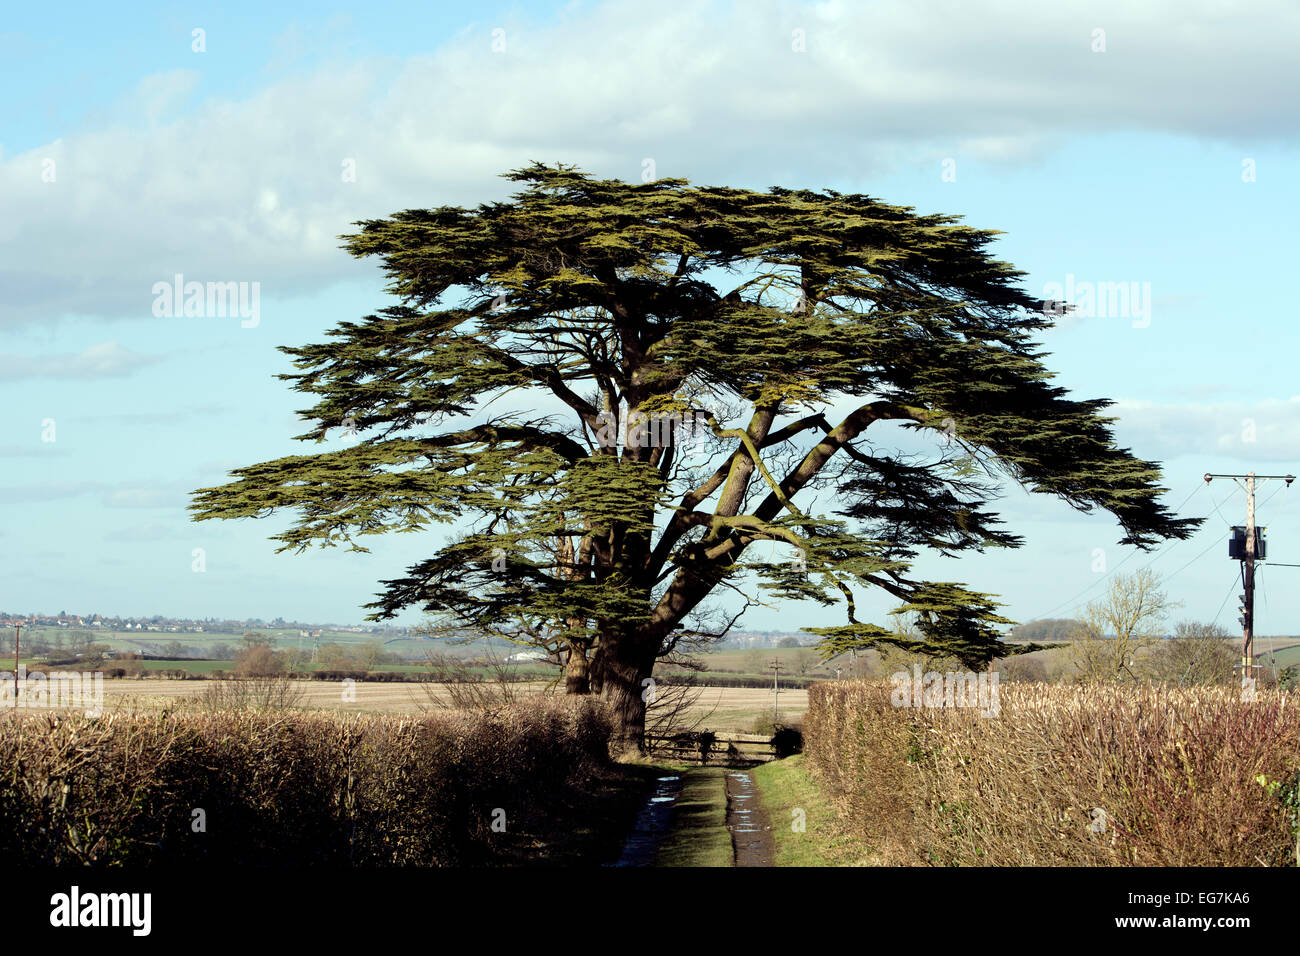 Cedar of Lebanon tree at Easton Maudit village, Northamptonshire, England, UK - Stock Image